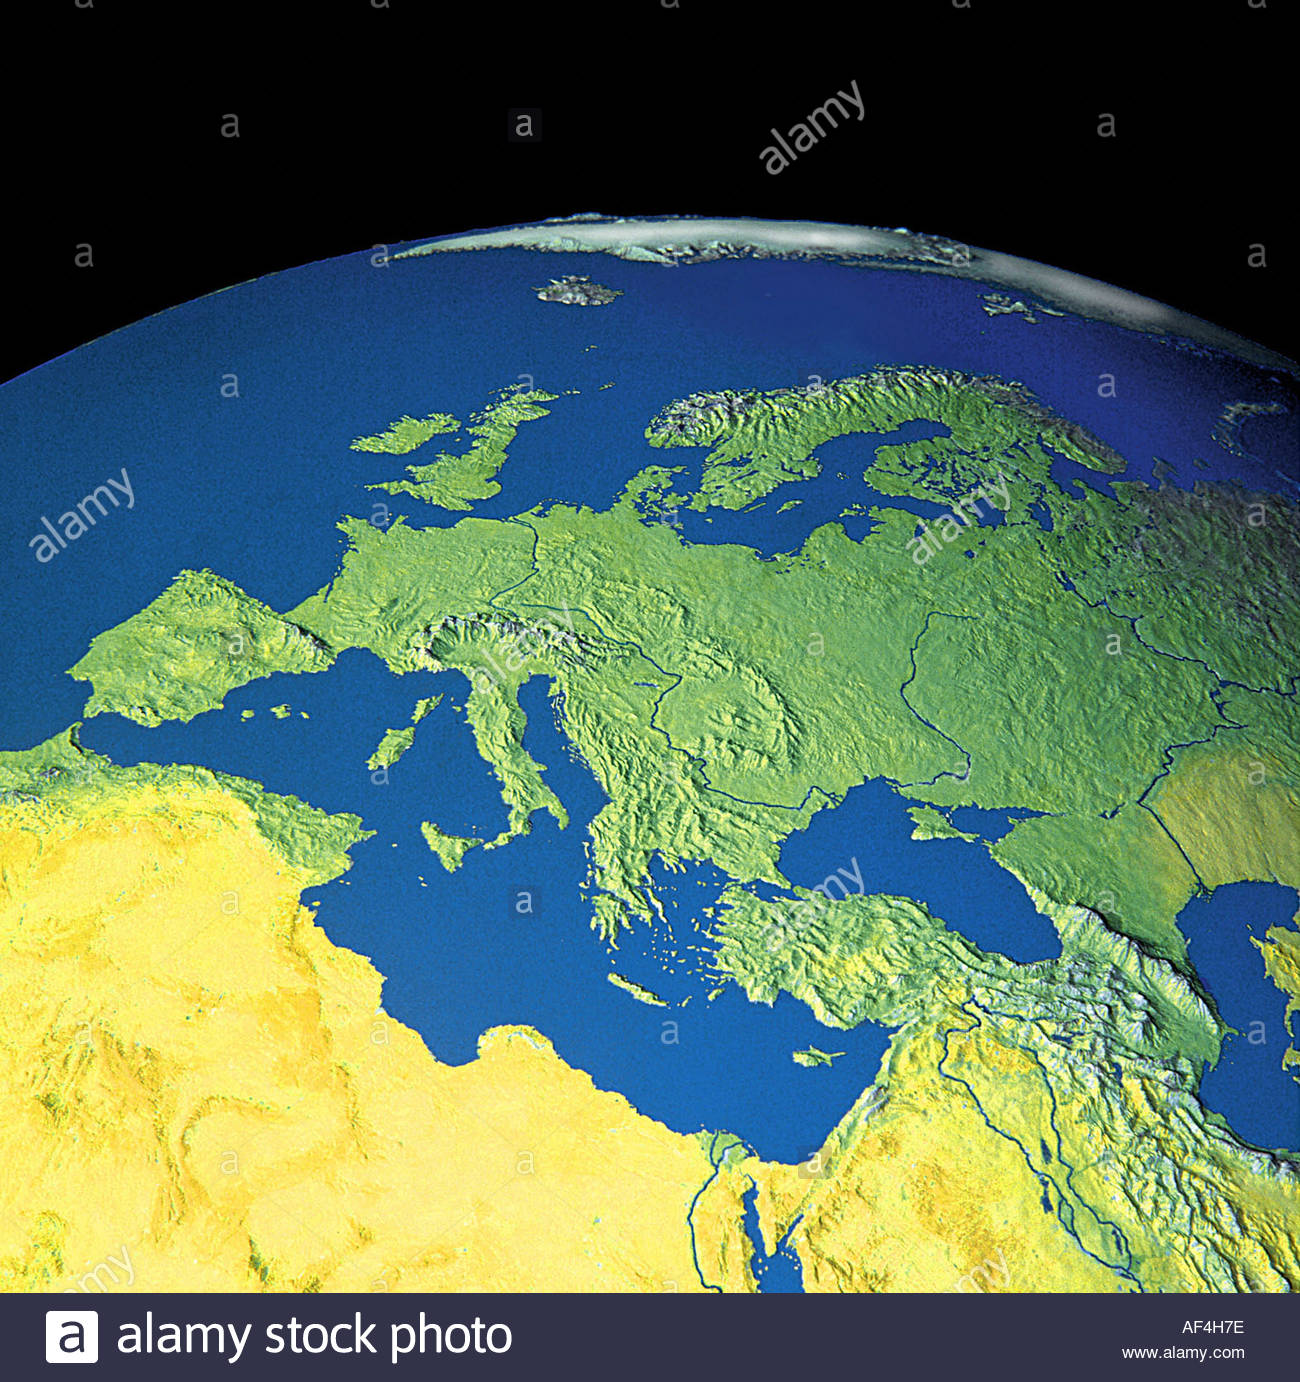 Map maps globe globes africa europe middle east stock photo 4514173 map maps globe globes africa europe middle east gumiabroncs Choice Image